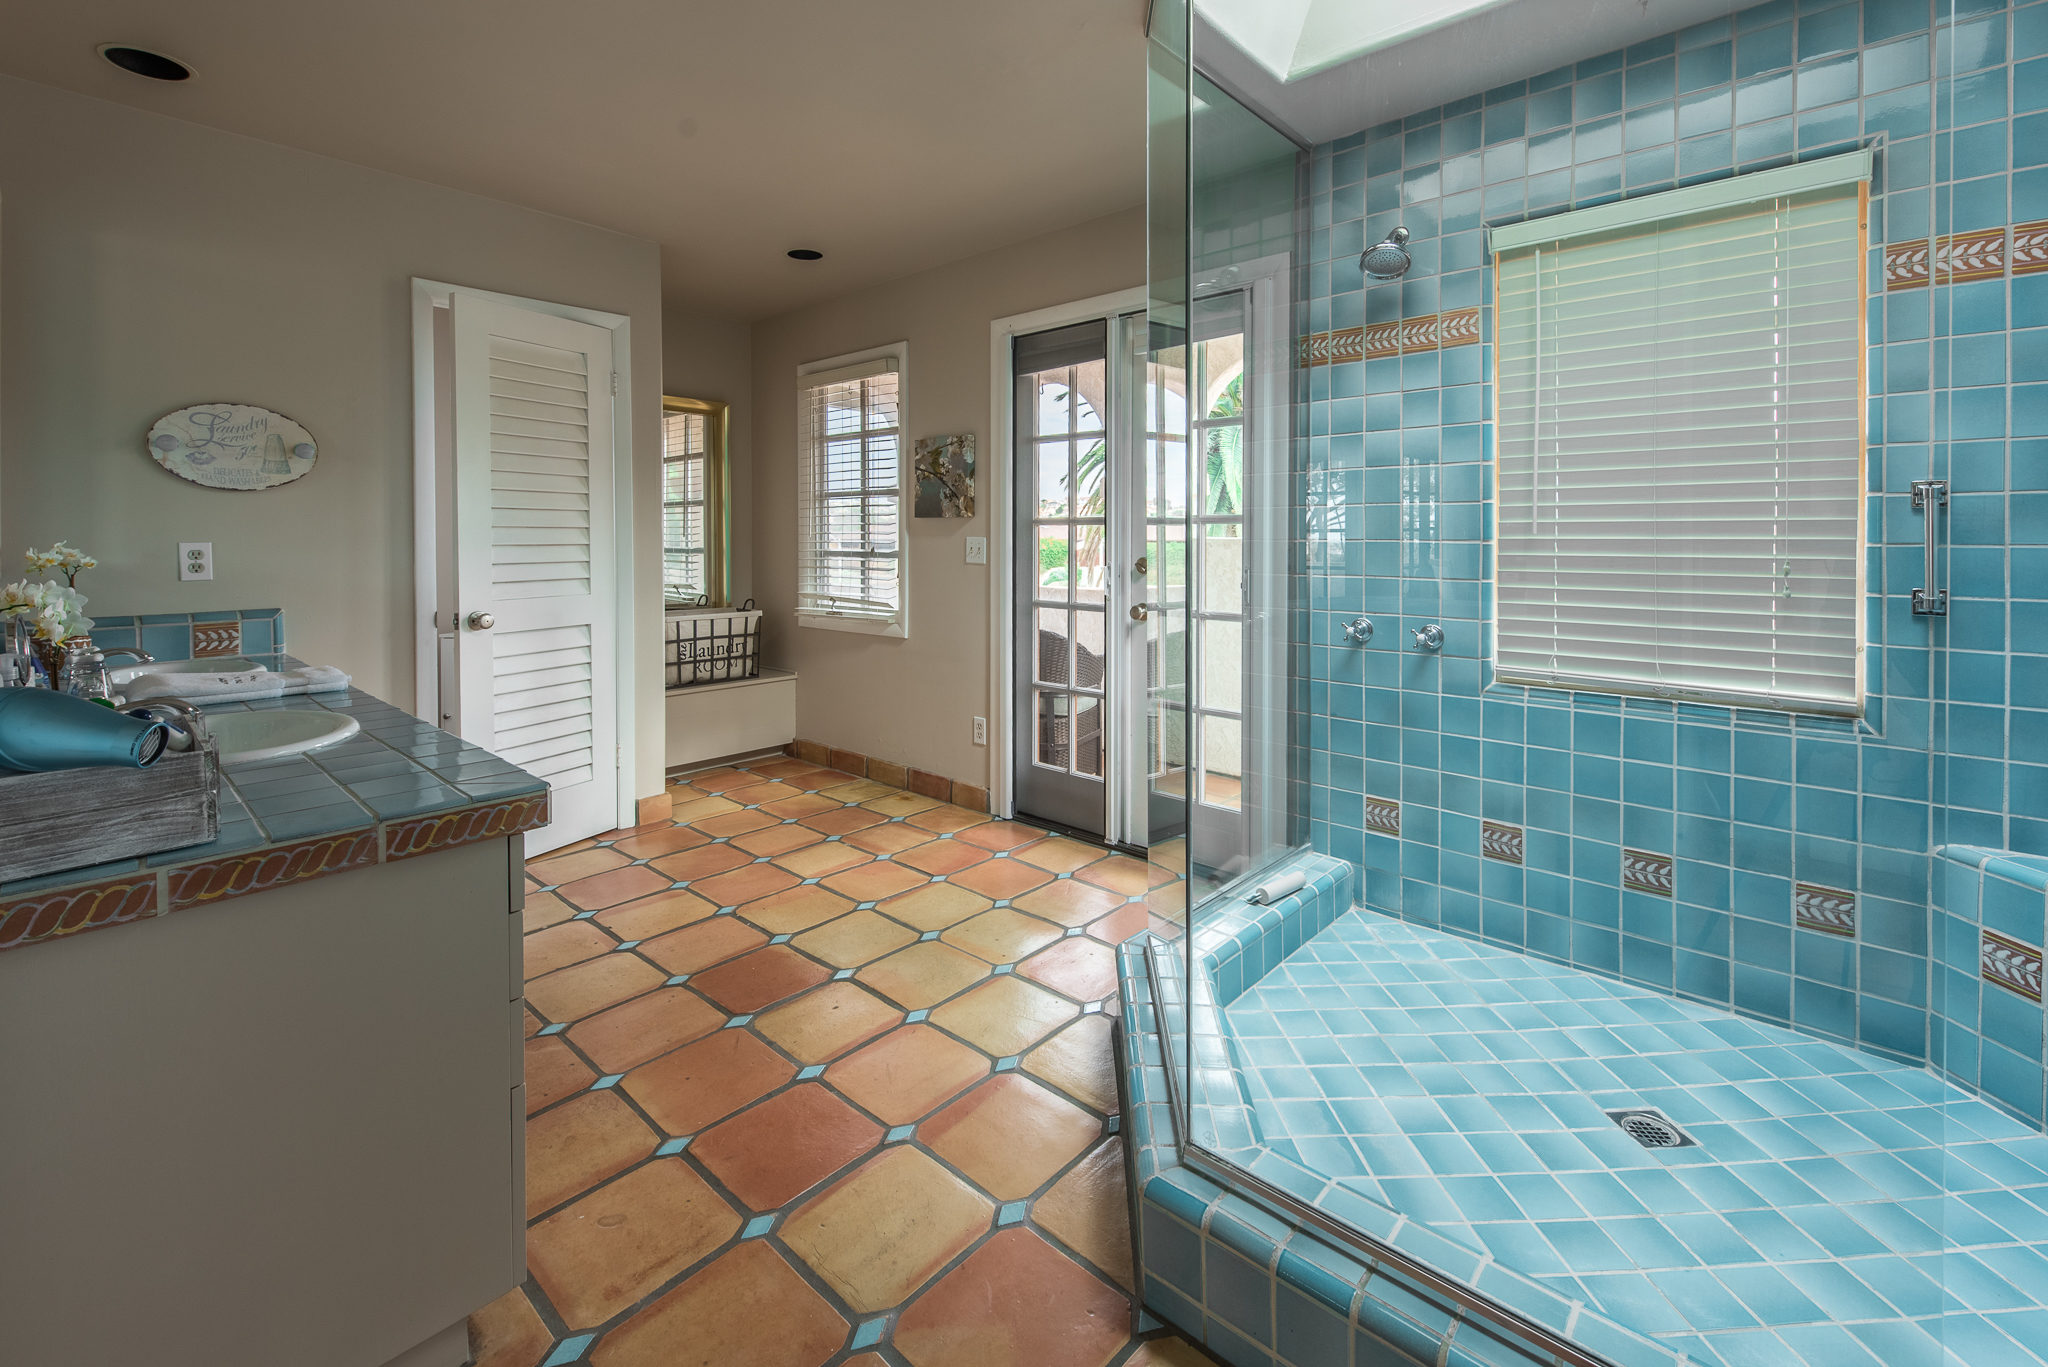 The Chatham Suite Bath - Kate Stanton BB Encinitas, CA